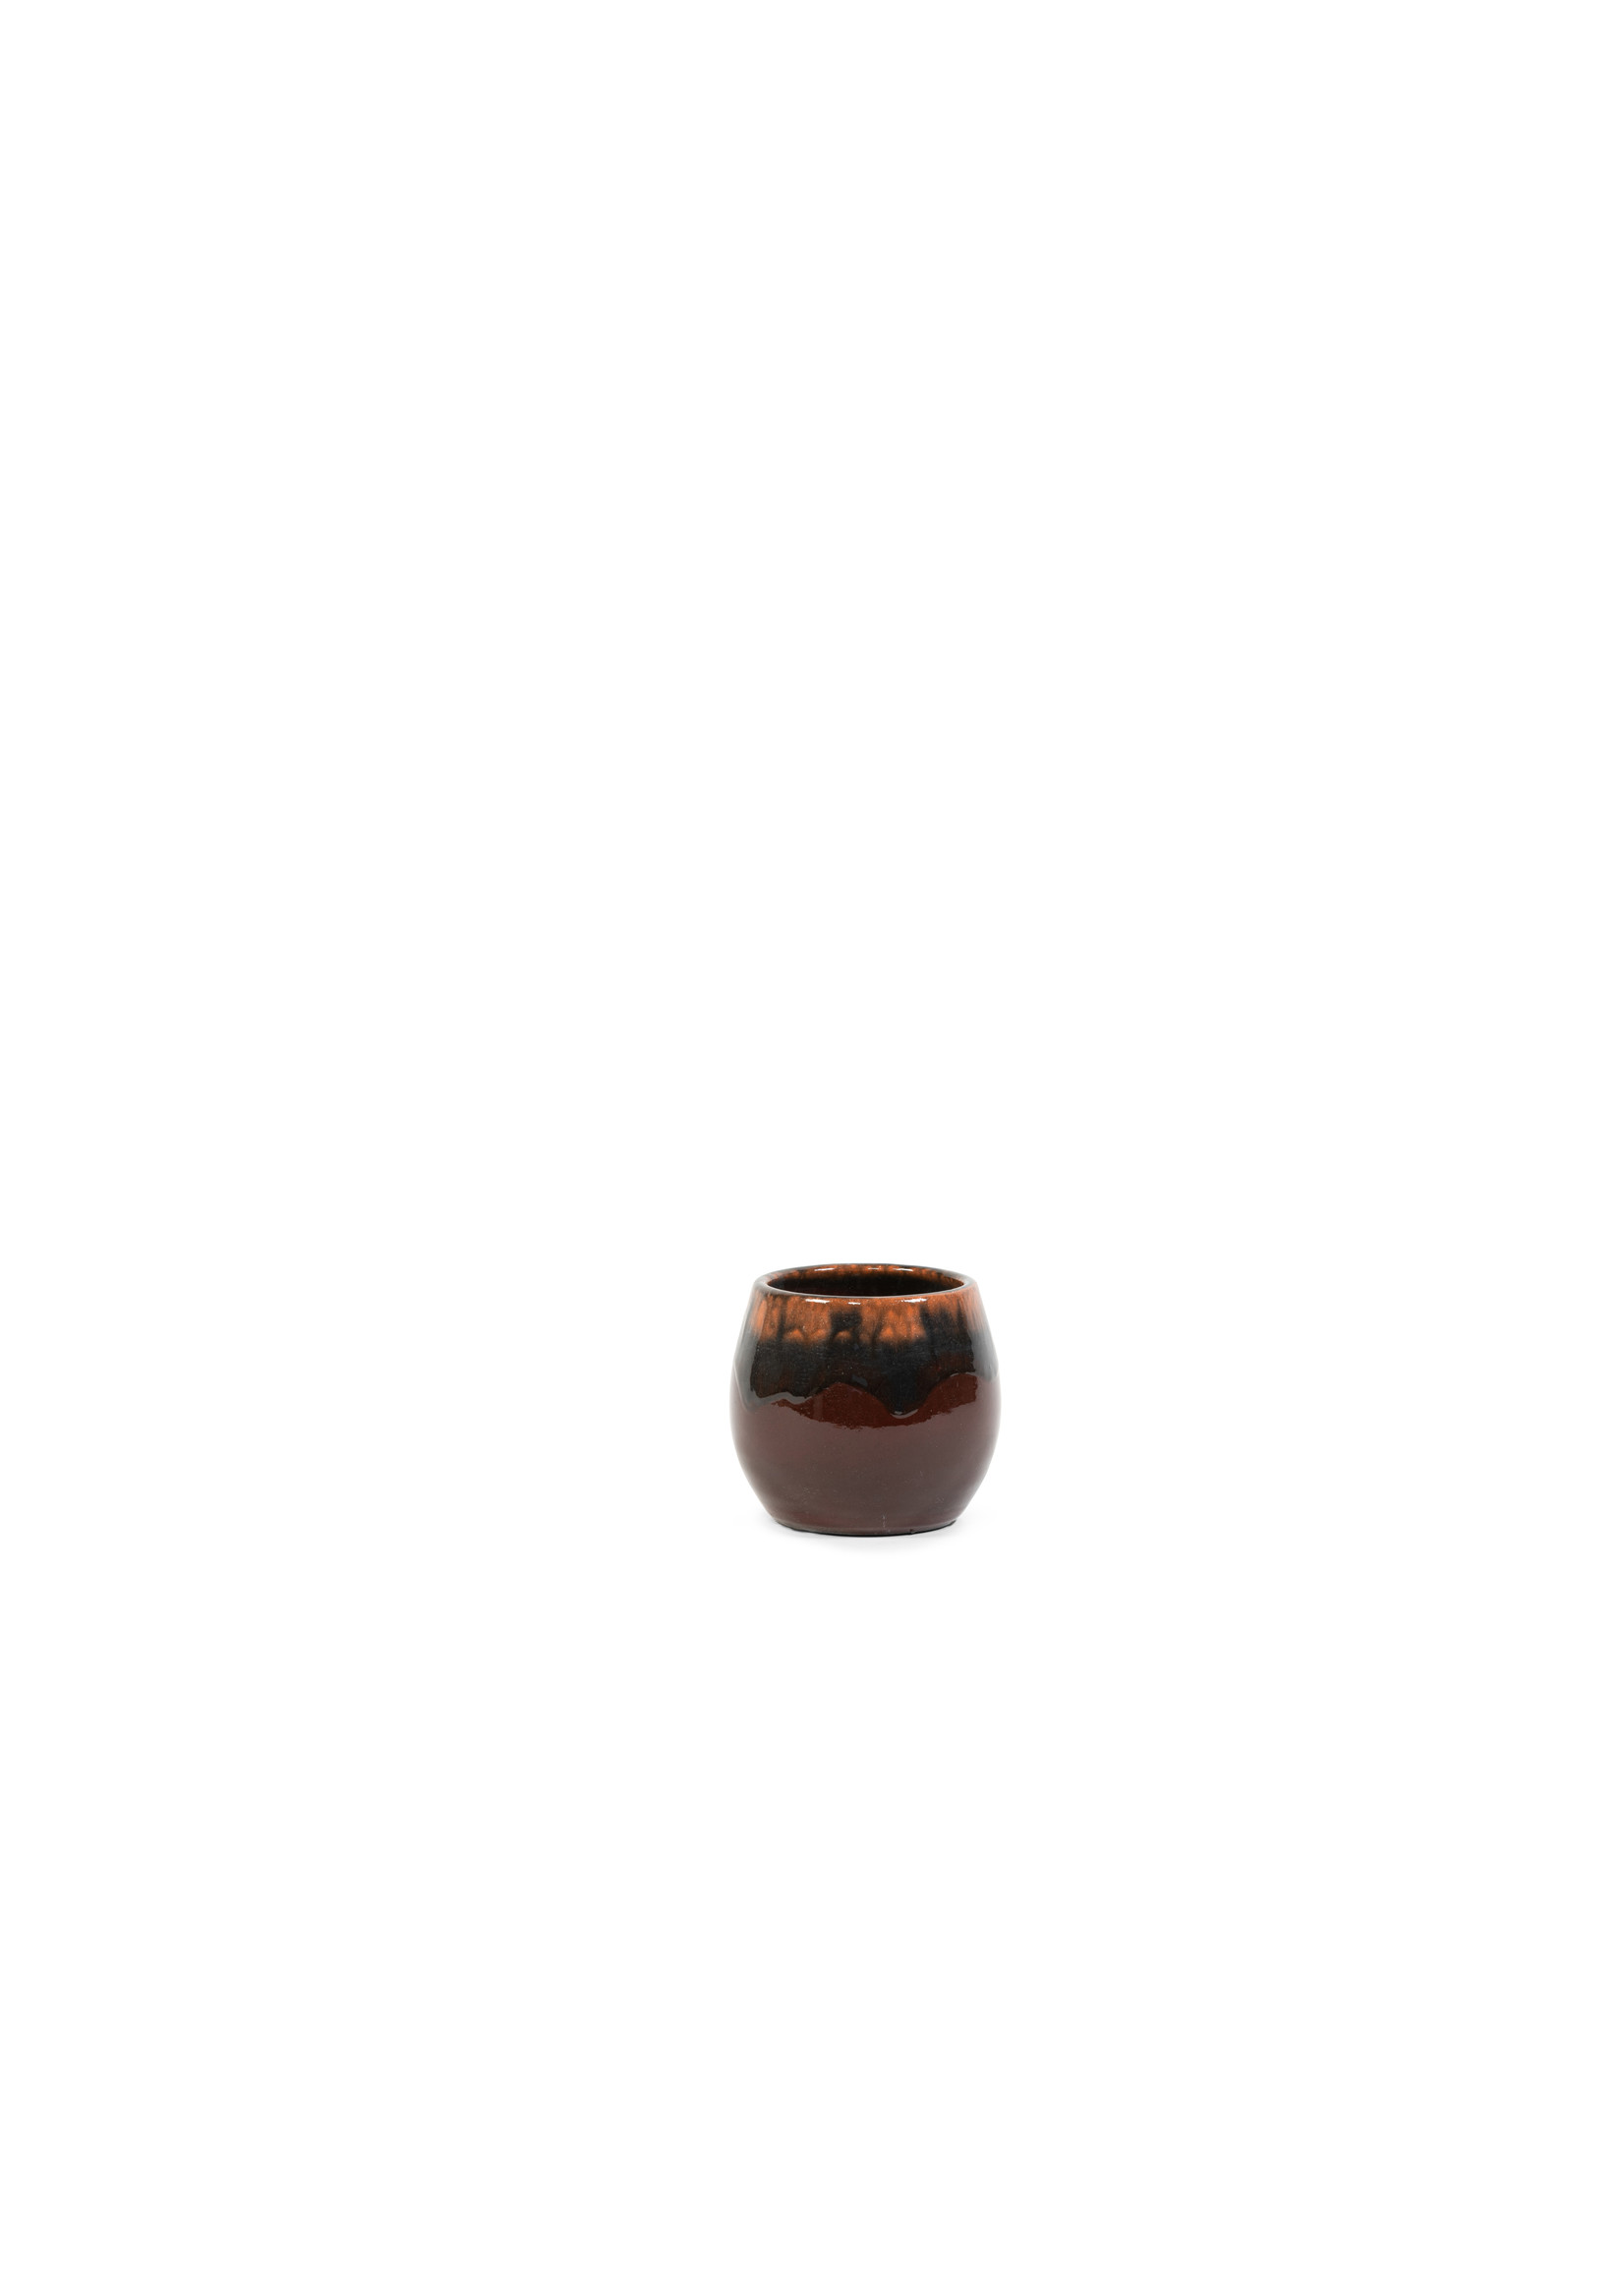 Dekocandle Bloempot Terracotta Bordeaux Small